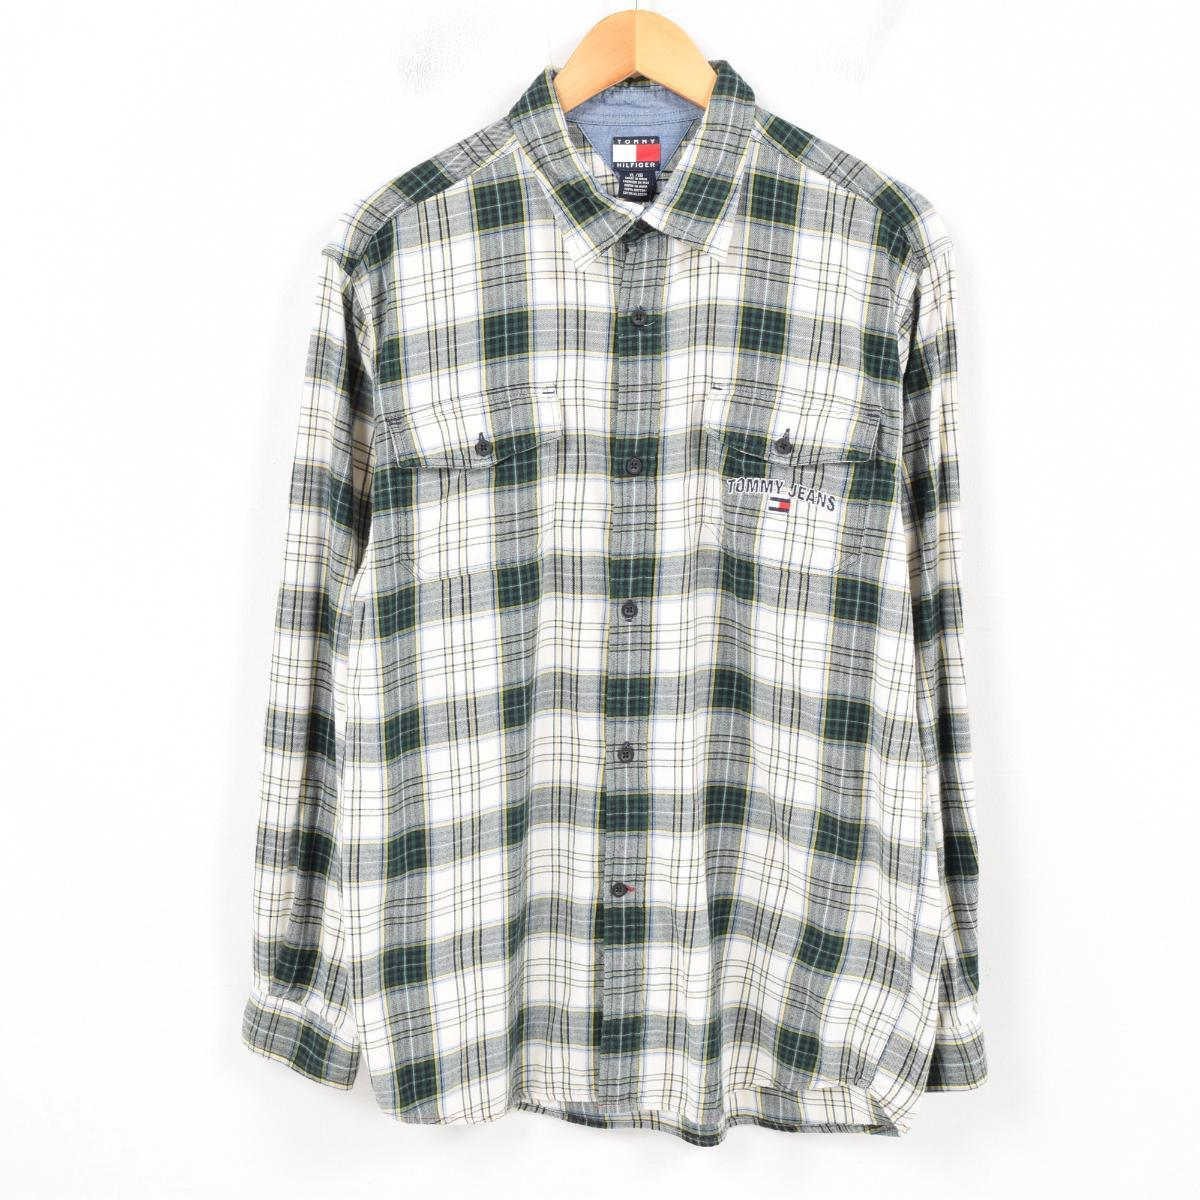 6eccfdf0 90s トミーヒルフィガー TOMMY HILFIGER checked pattern long sleeves light flannel  shirt men L /war9017 ...